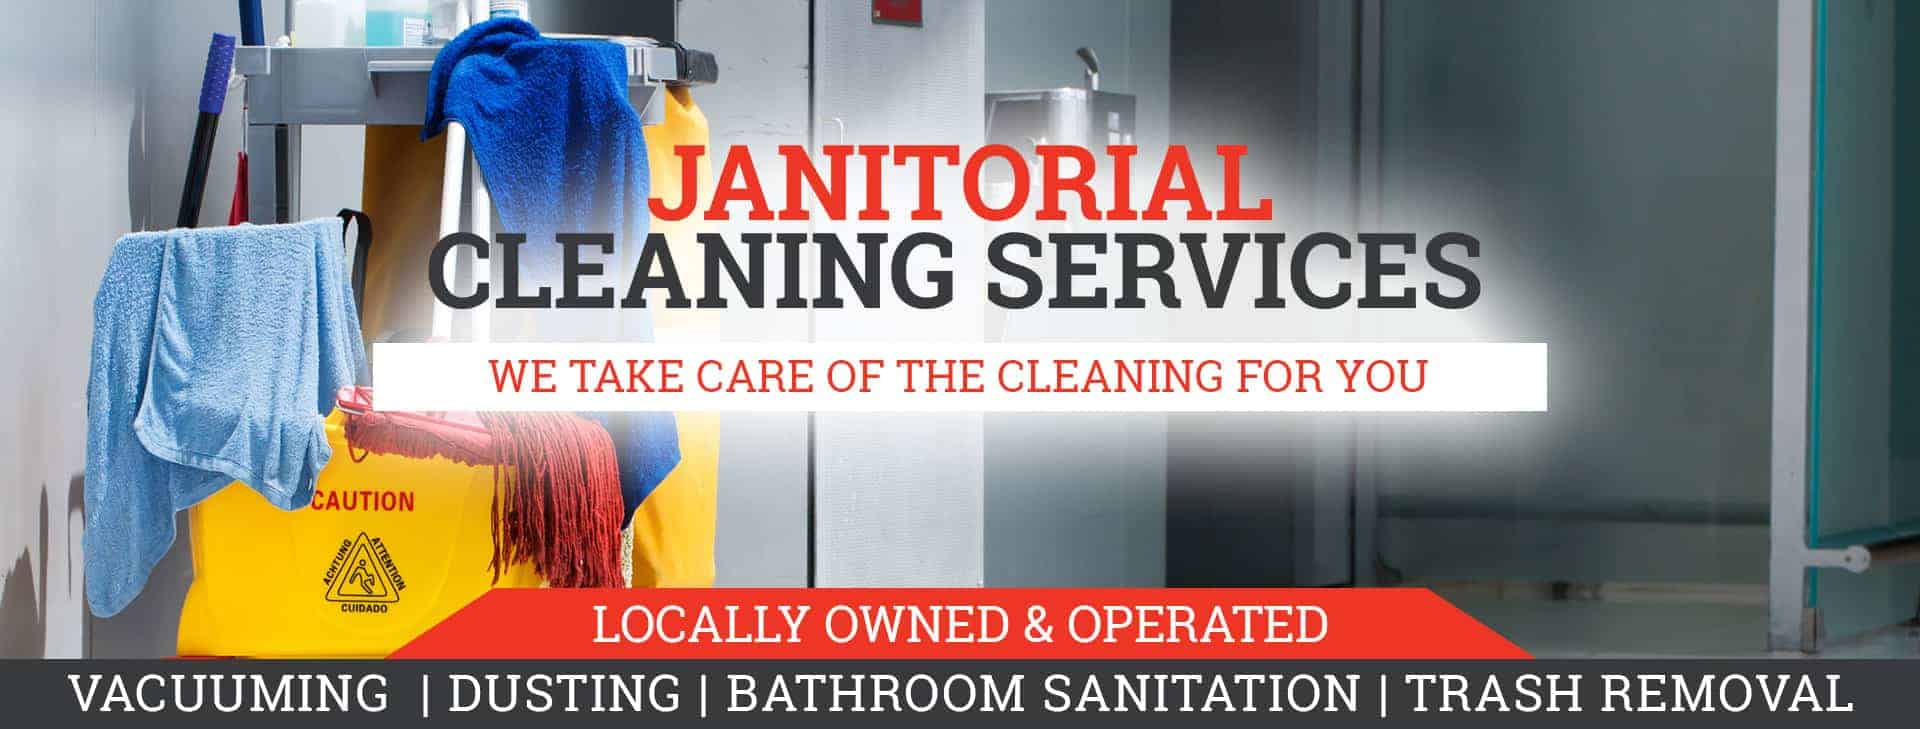 Janitorial Services Penticton